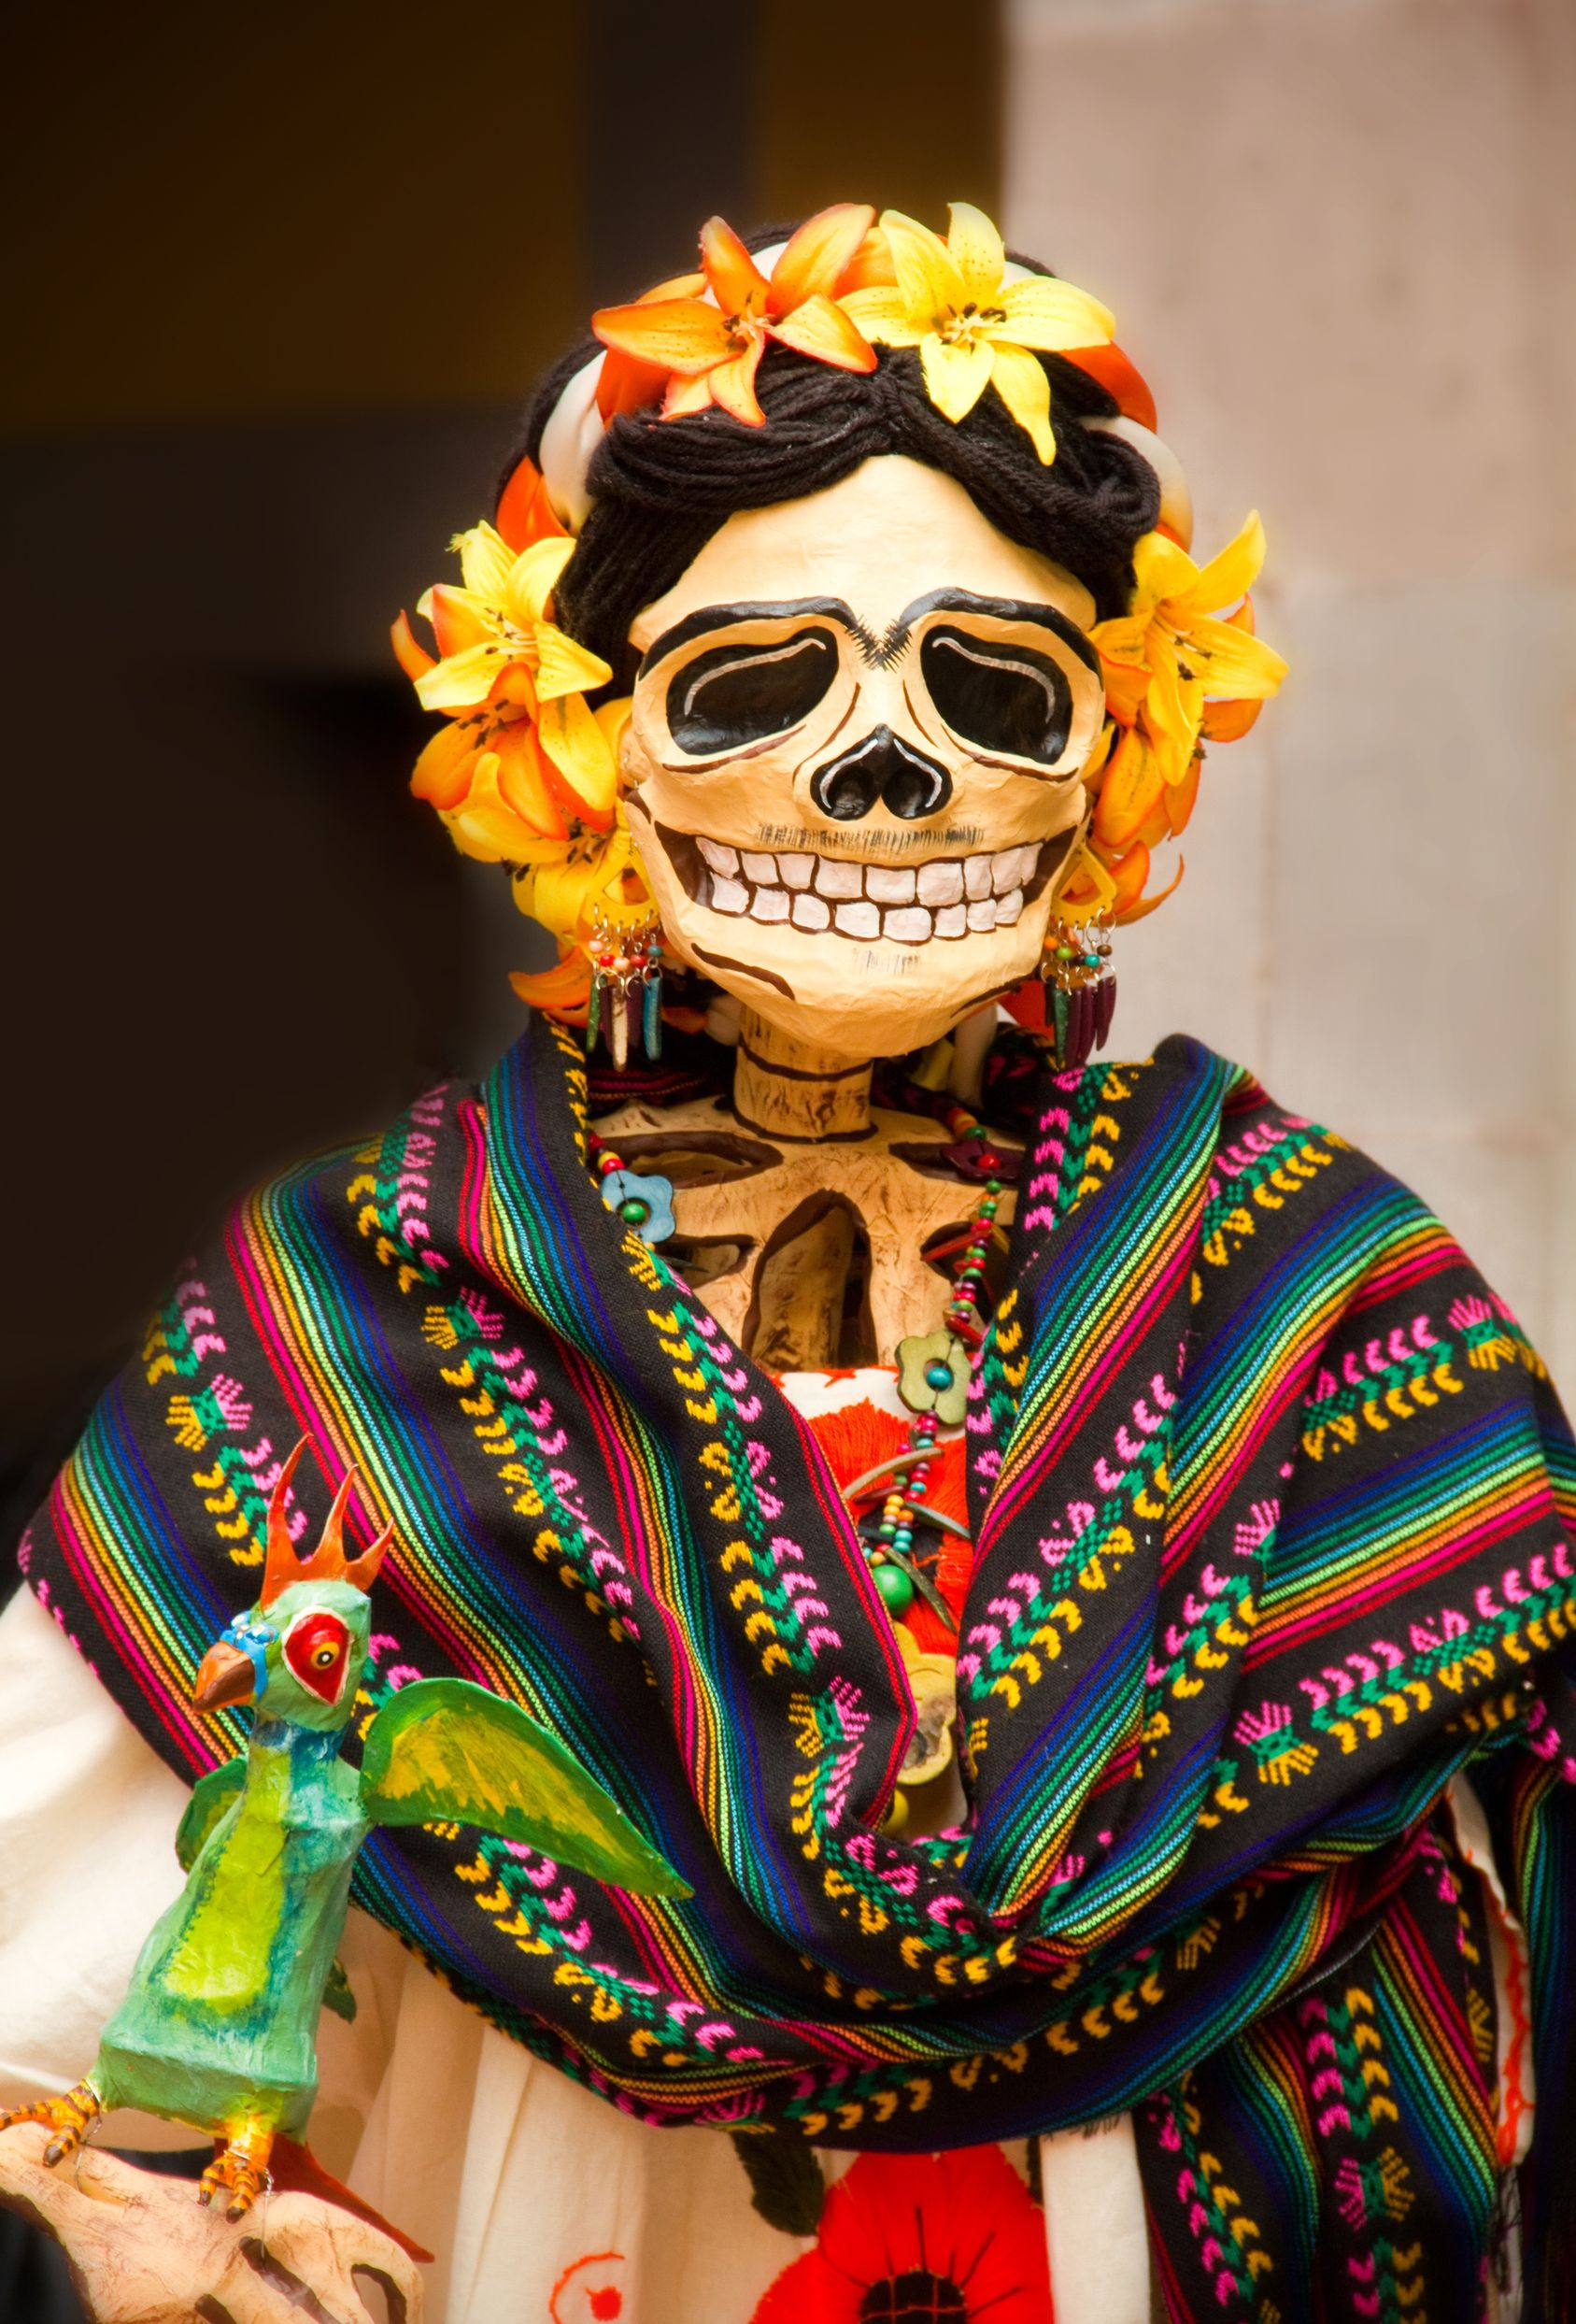 https://i0.wp.com/www.worldfestivaldirectory.com/wp-content/uploads/2012/04/Woman-skeleton-on-Day-of-the-Dead-in-Mexico.jpg